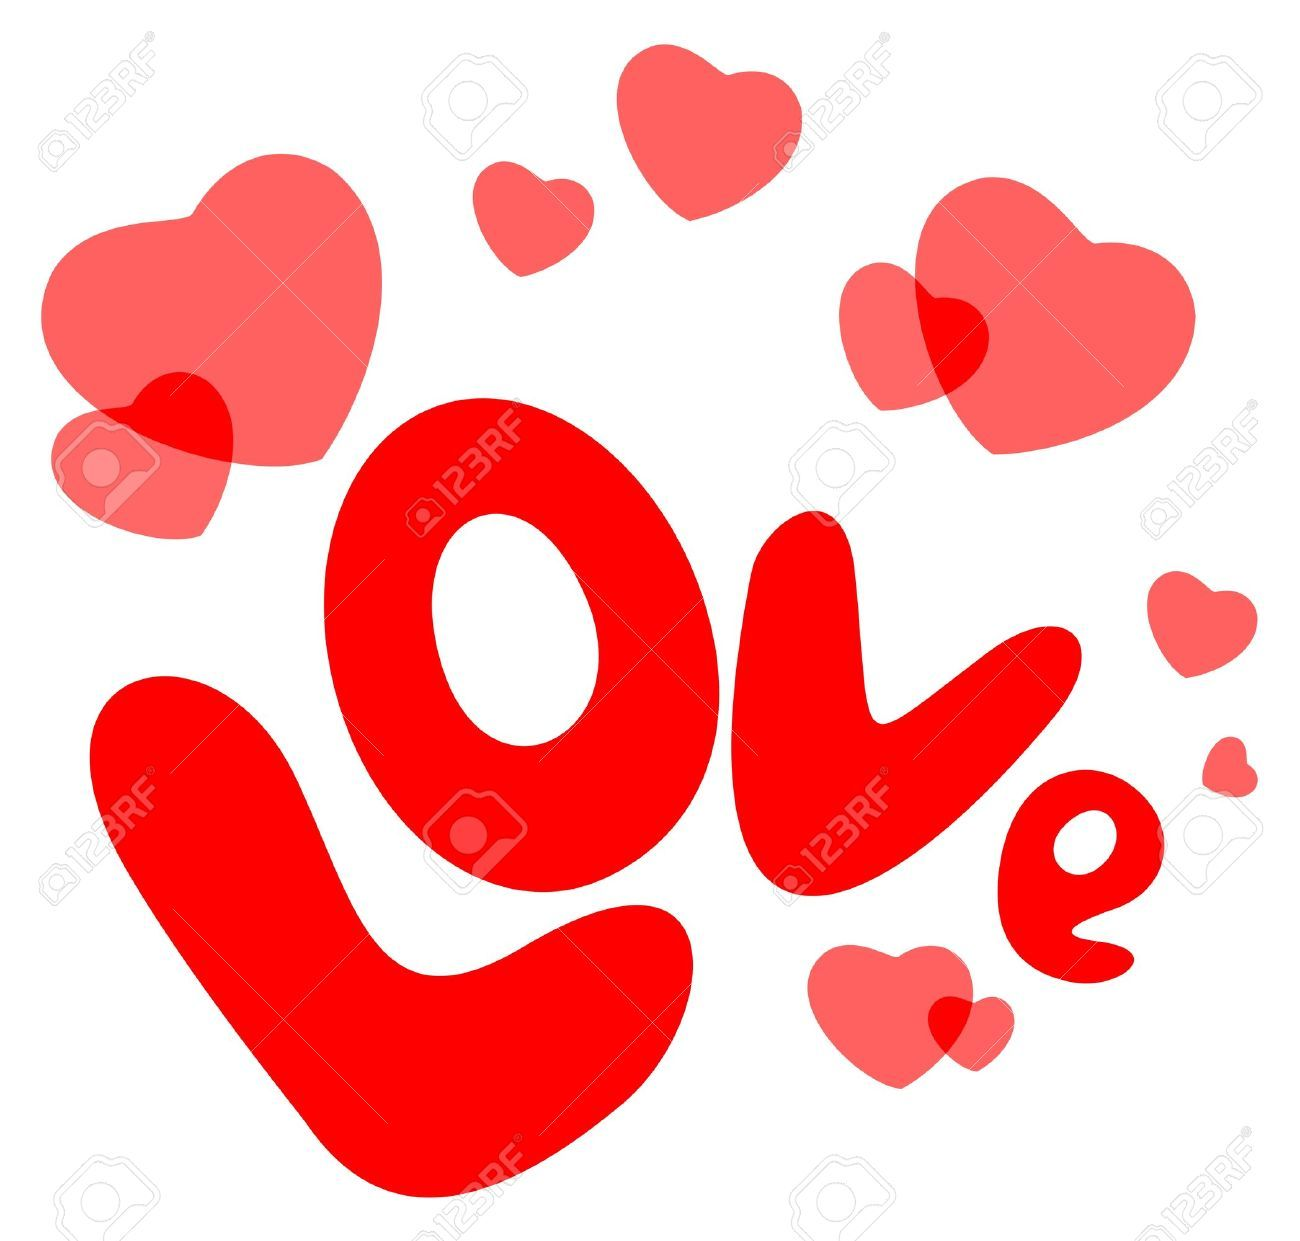 Pin by ronnie on dedicated to the one i love pinterest cartoon royalty free love symbol images and stock photography buycottarizona Image collections